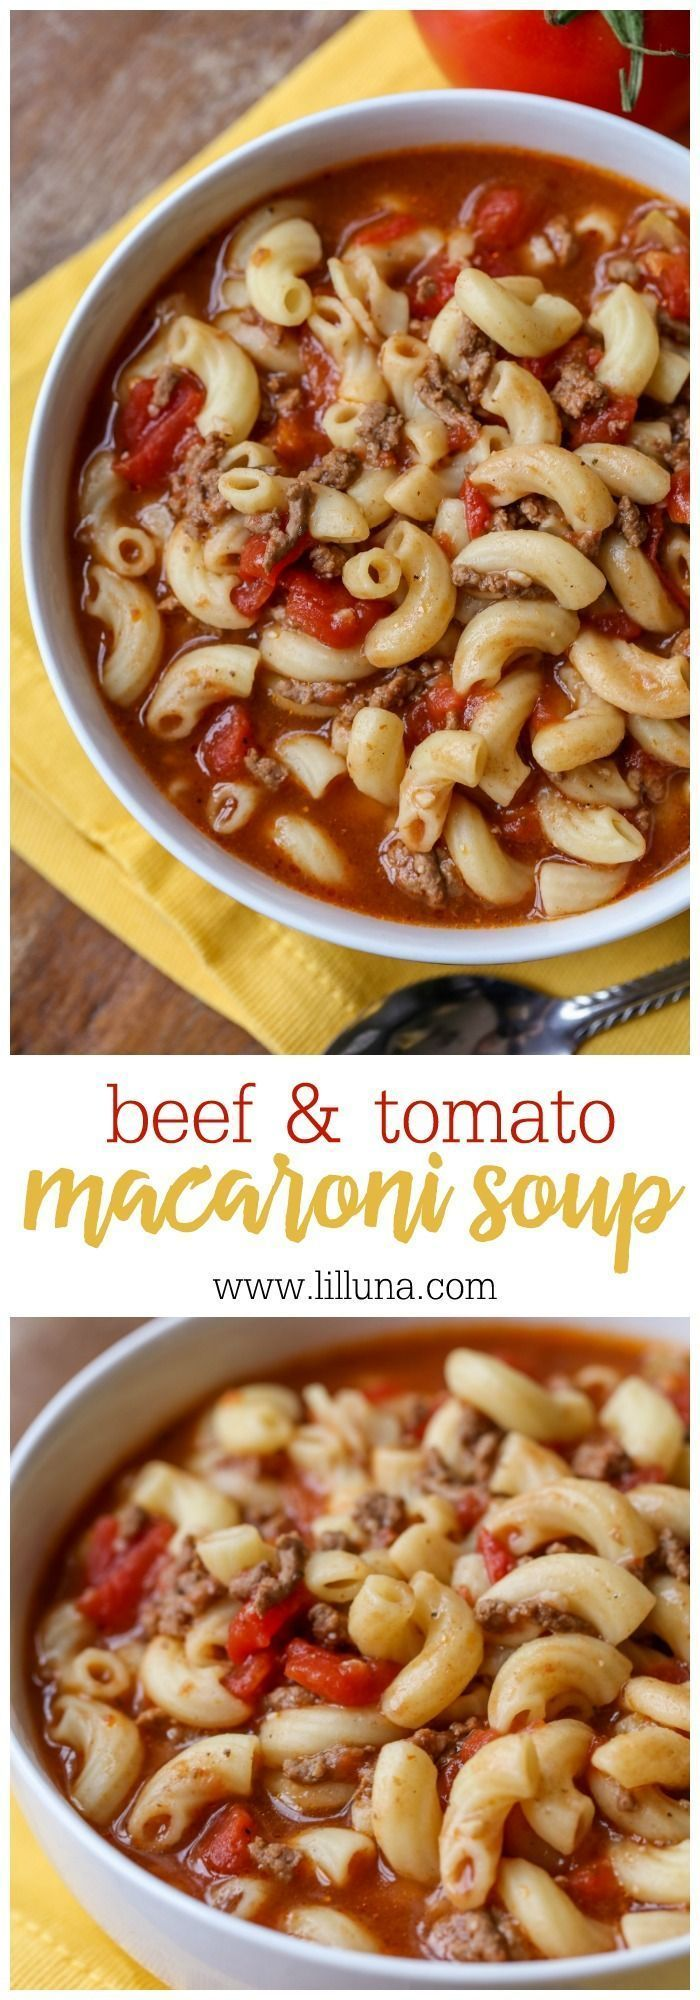 Beef & Tomato Macaroni Soup - a hearty soup full of hamburger, tomatoes, macaroni, and more!Worcestershire sauce combined with brown sugar makes for a perfectly sweet and savory flavor that is irresistible!!